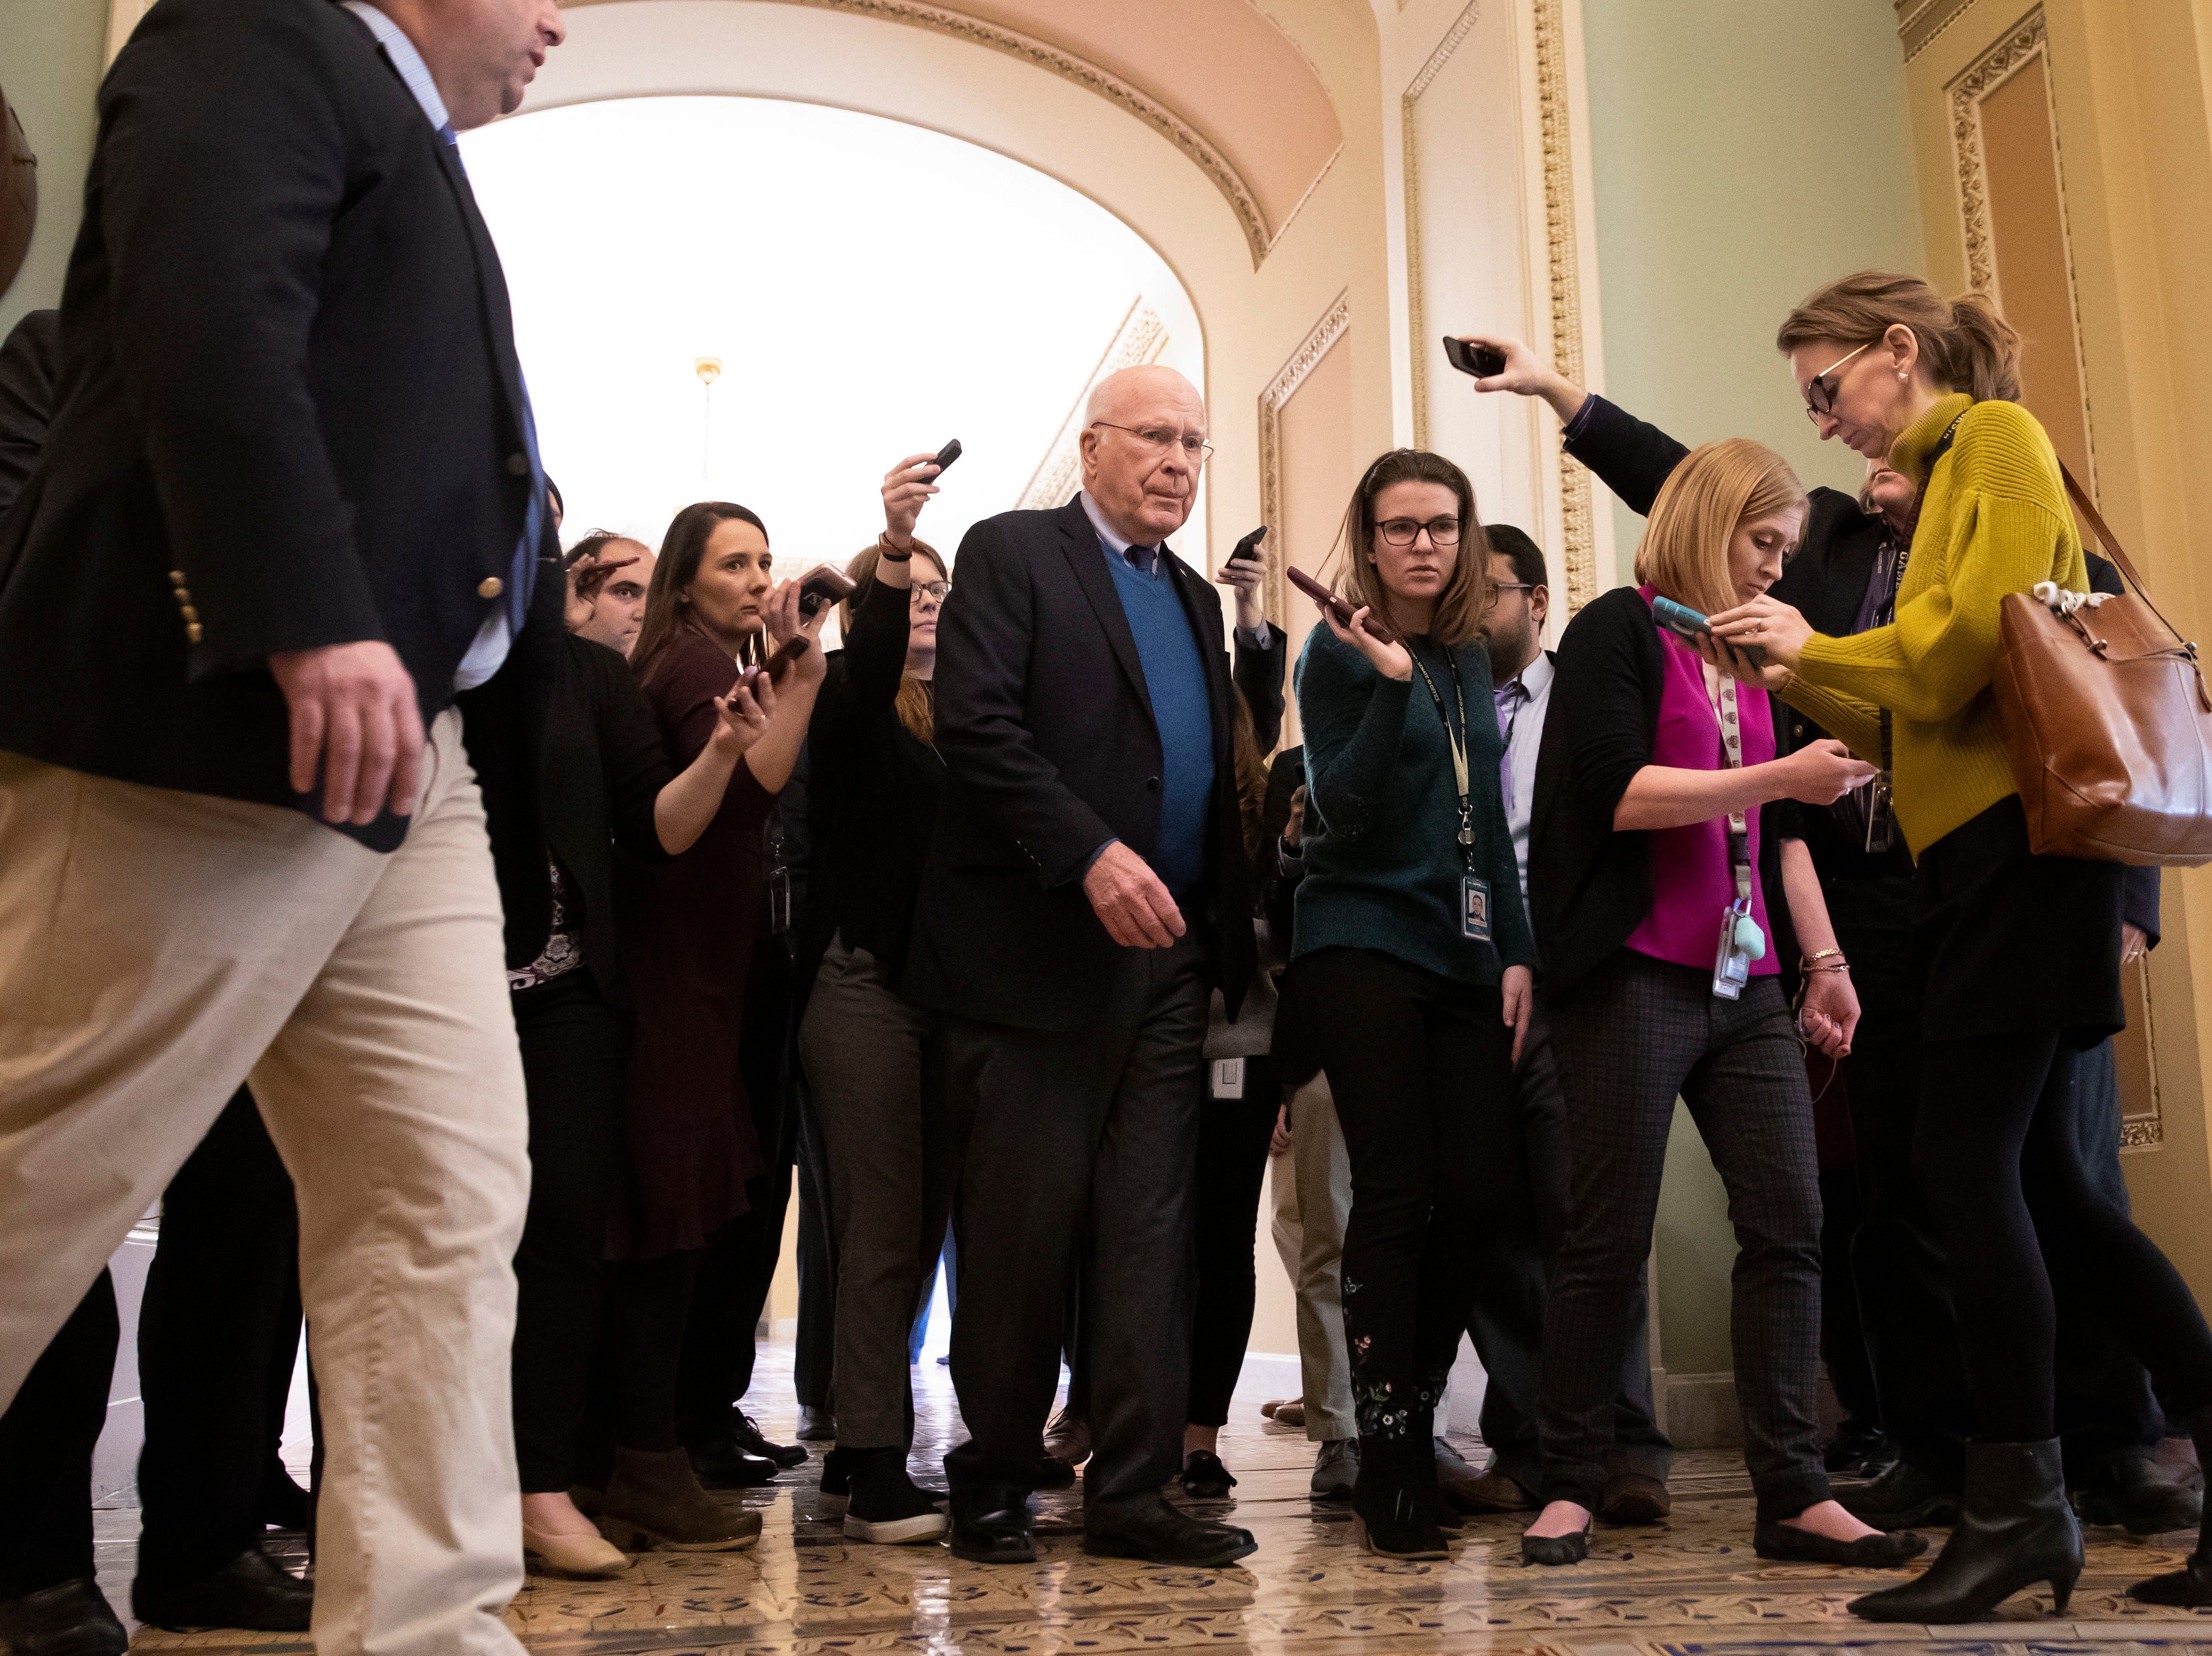 Democratic Senator from Vermont Patrick Leahy, center, walks near the Senate chamber before President Donald J. Trump agreed to end the partial government shutdown, at the US Capitol in Washington, DC on Jan. 25, 2019.